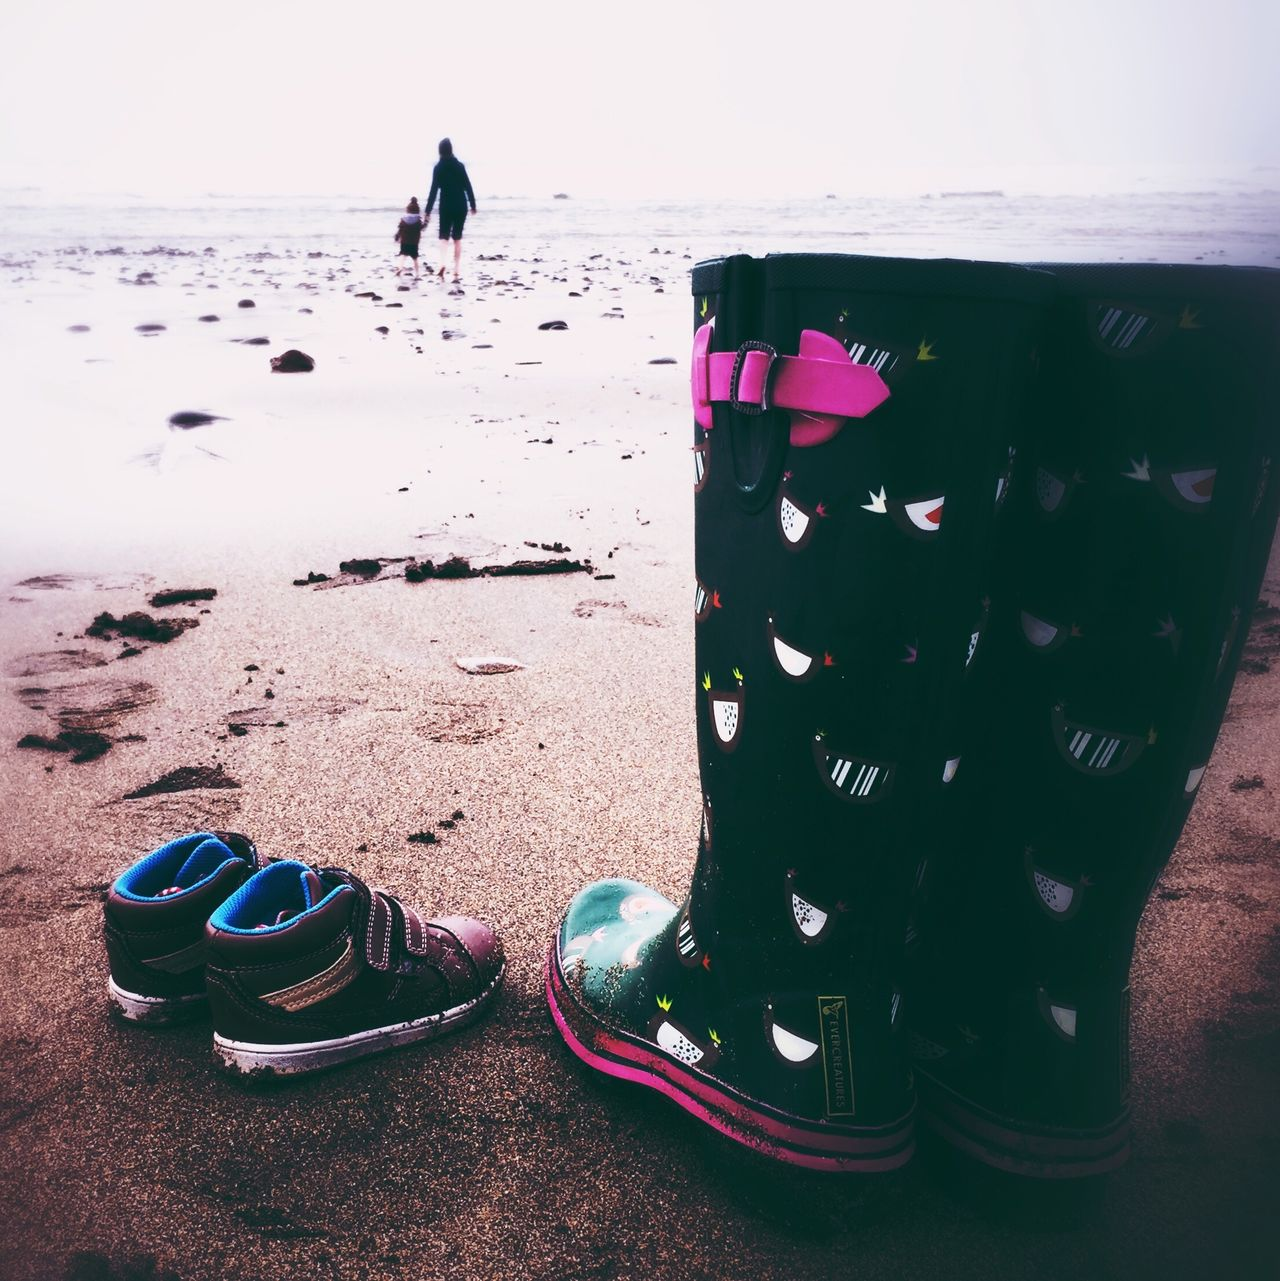 Widemouth Bay, Bude People And Places Outdoors Tranquility Season  Beauty In Nature Remote Non-urban Scene Nature Travel Destinations Unrecognizable Person Sea Beach Wellington Boots Holding Hands Mother And Son Remote Location Idyllic Vacations